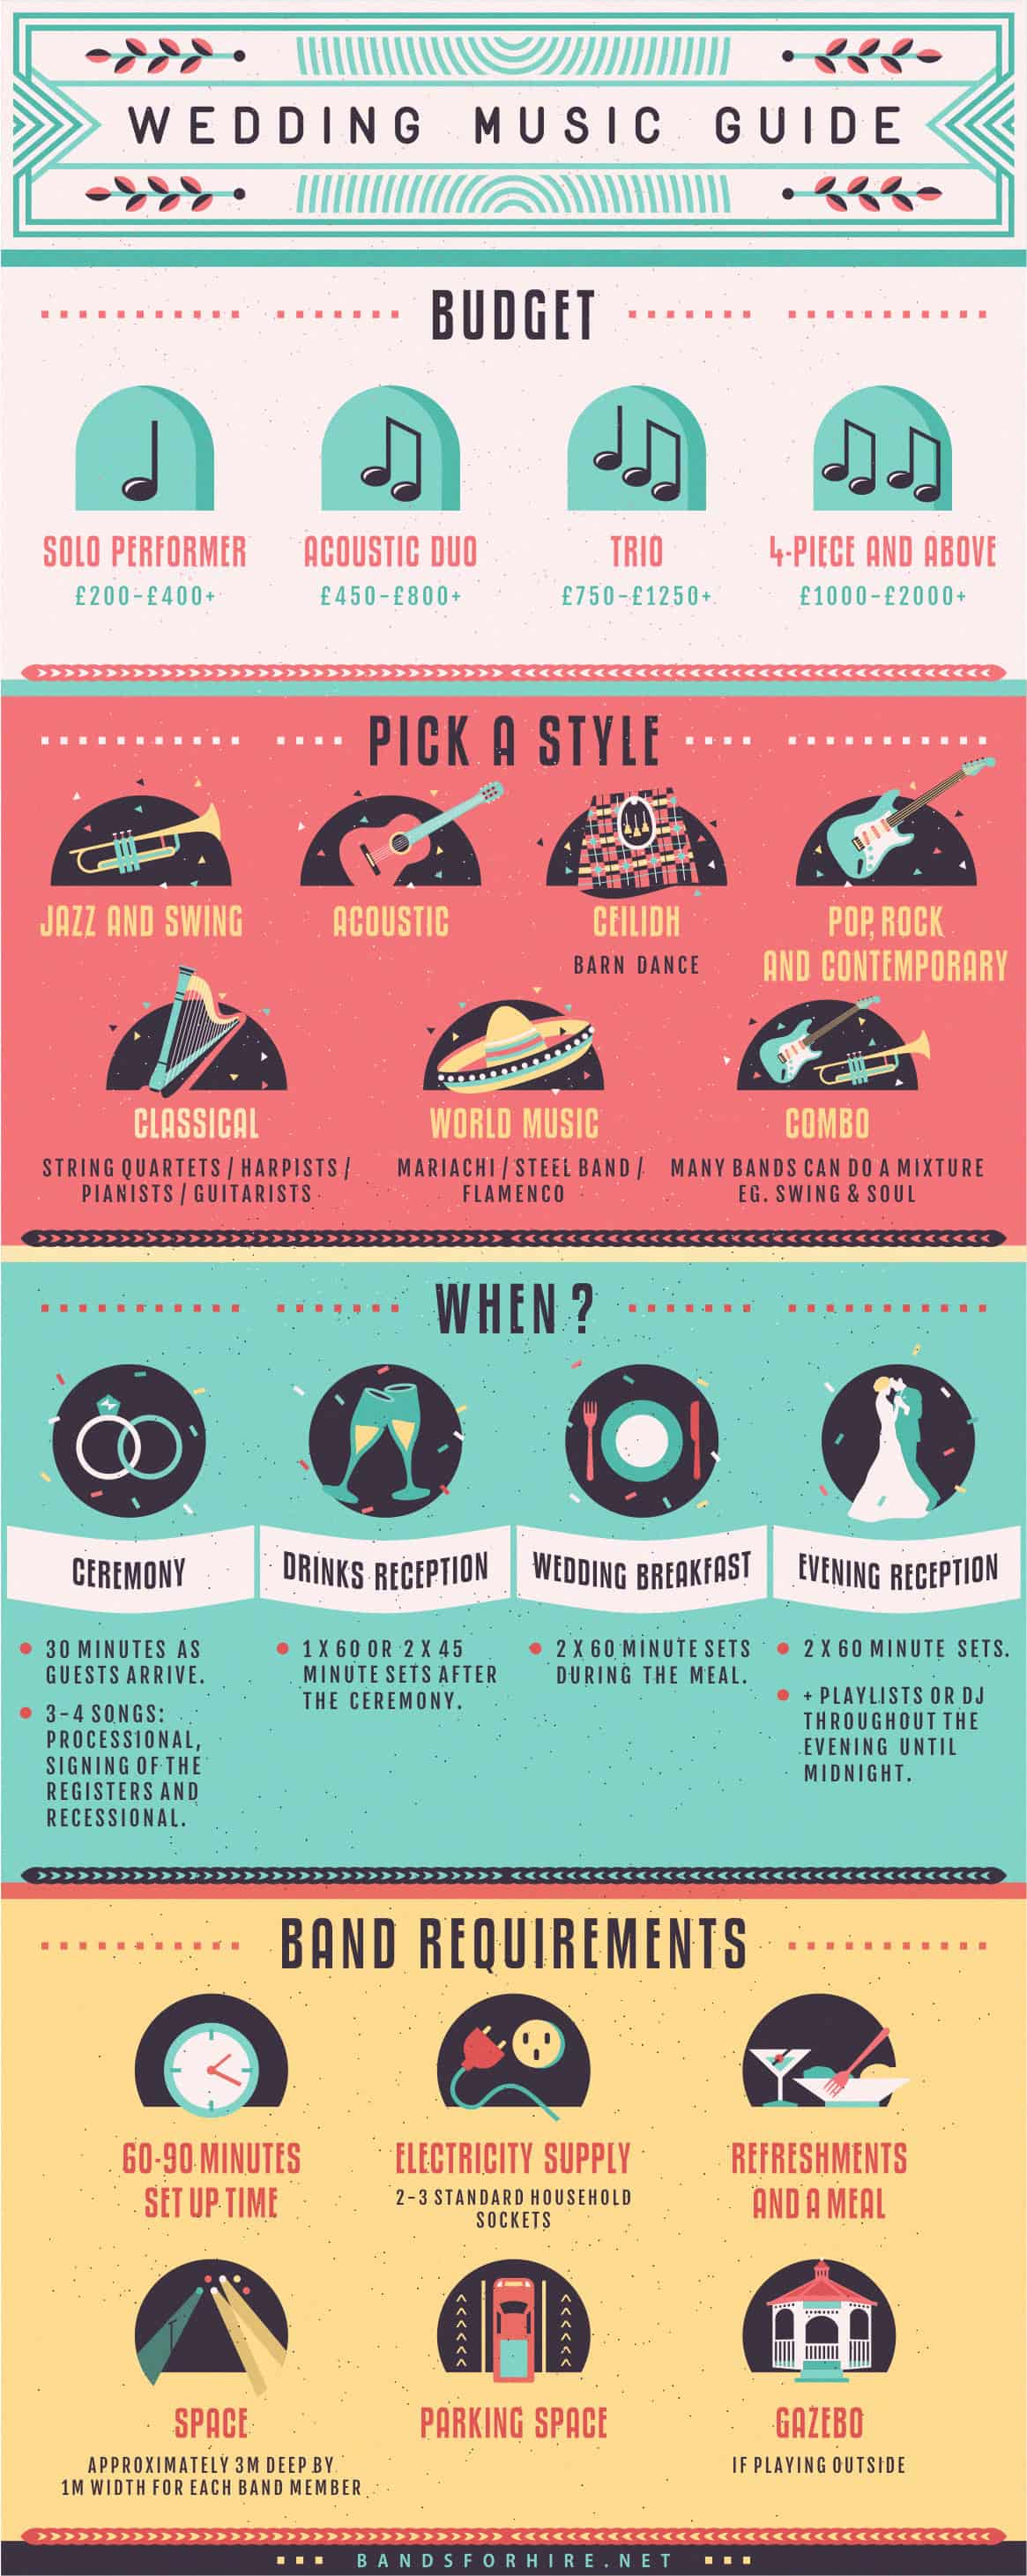 Wedding Music Guide Daily Infographic